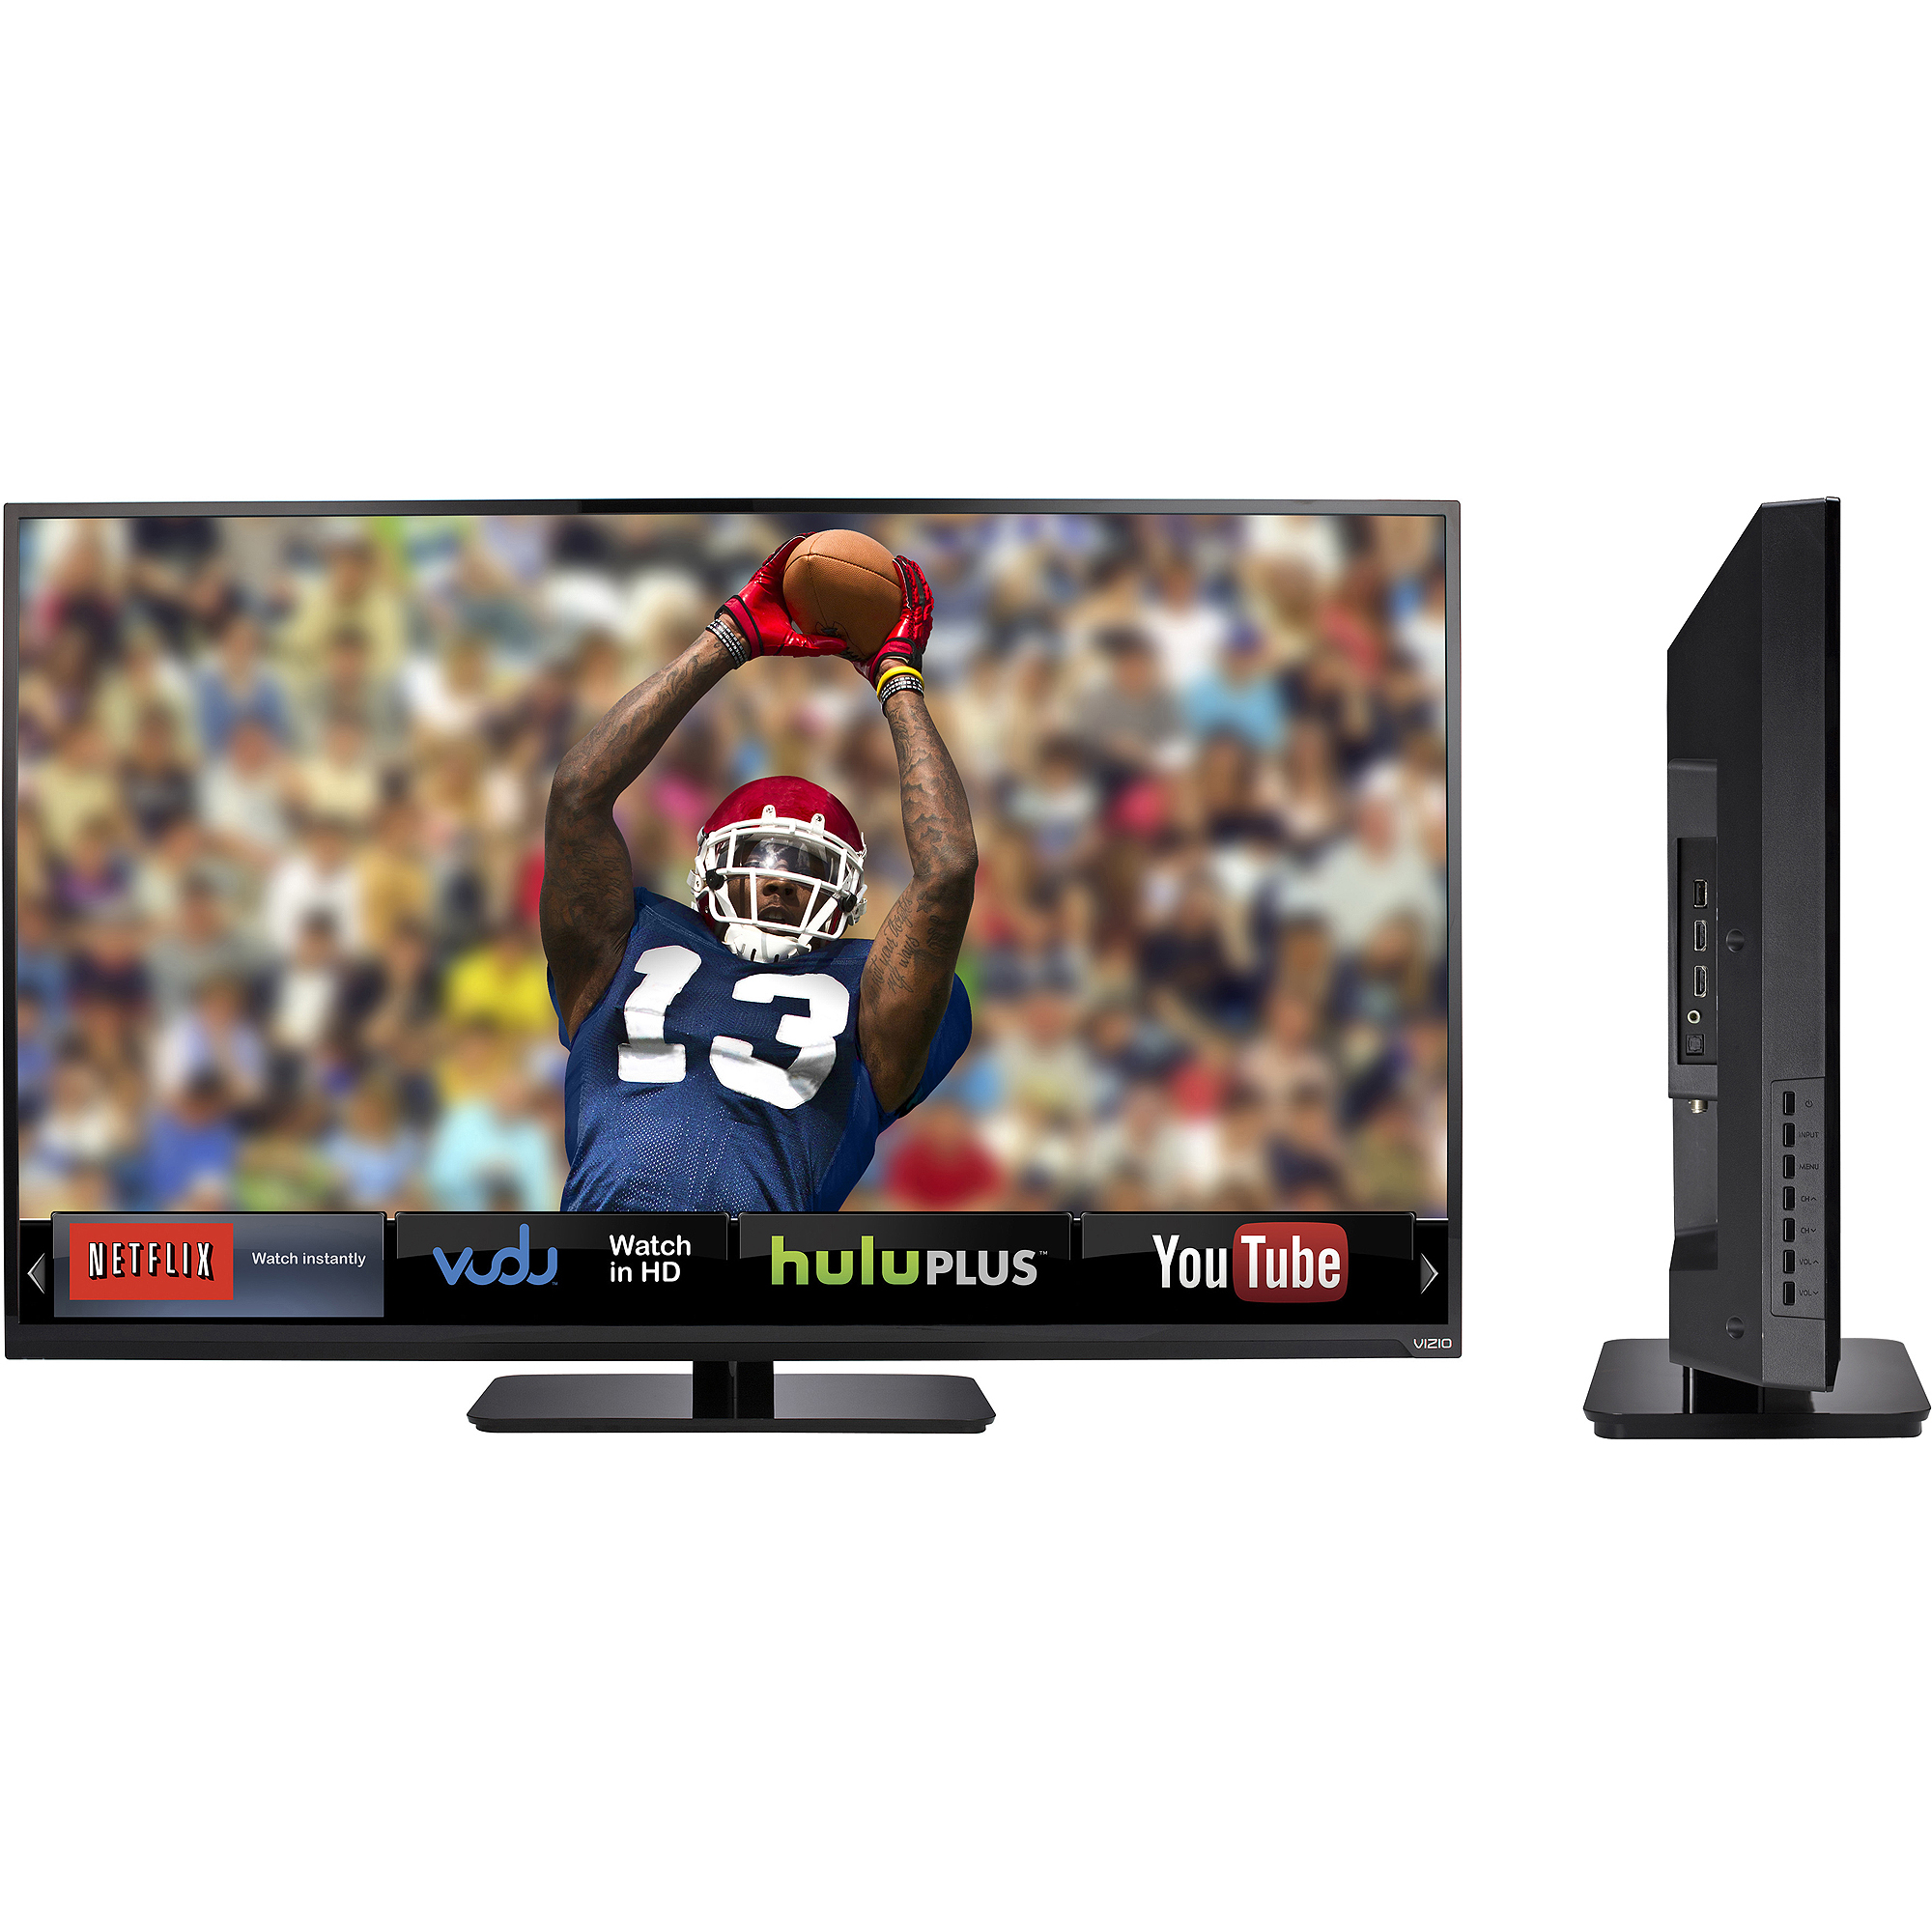 Vizio E-series E320I-A0 32-inch LED Smart HDTV - 1366 x 768 - 720p  - 8 ms - 60 Hz - Ethernet - Black